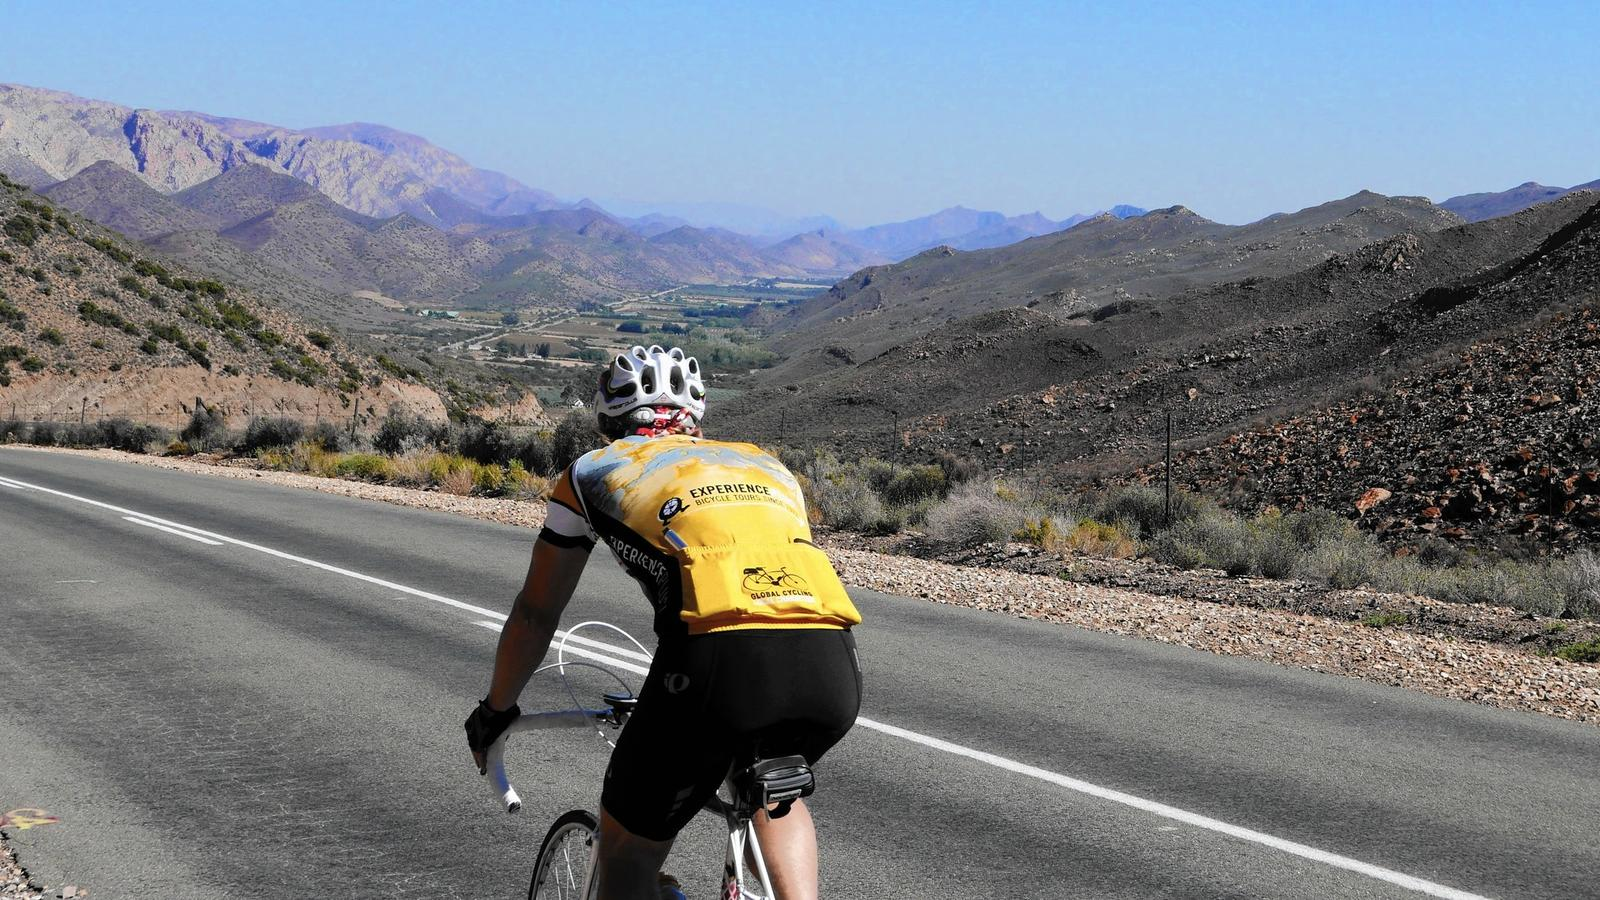 SUNSENTINEL | Covering South Africa on two wheels